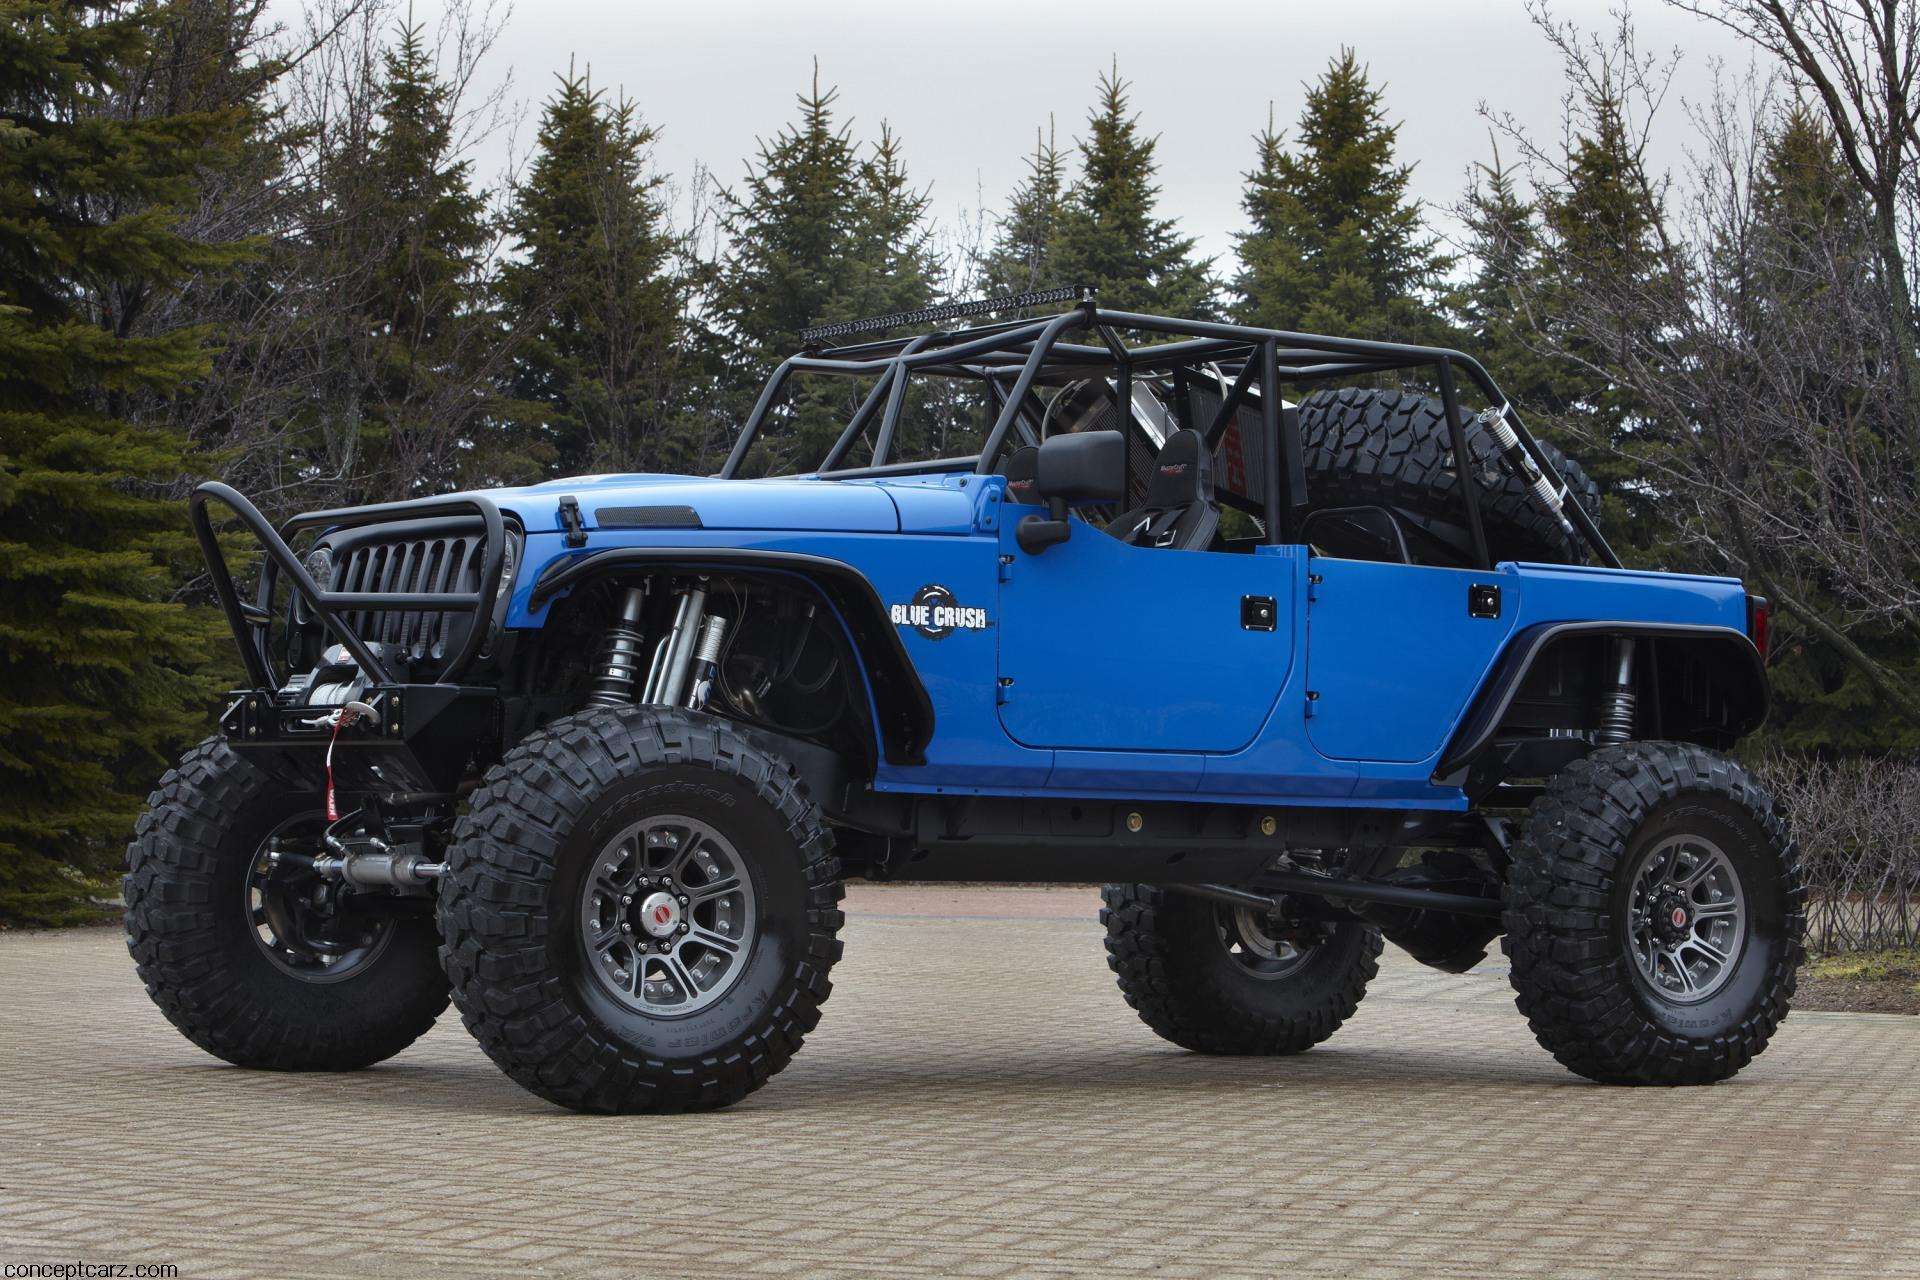 hight resolution of 2011 jeep wrangler blue crush